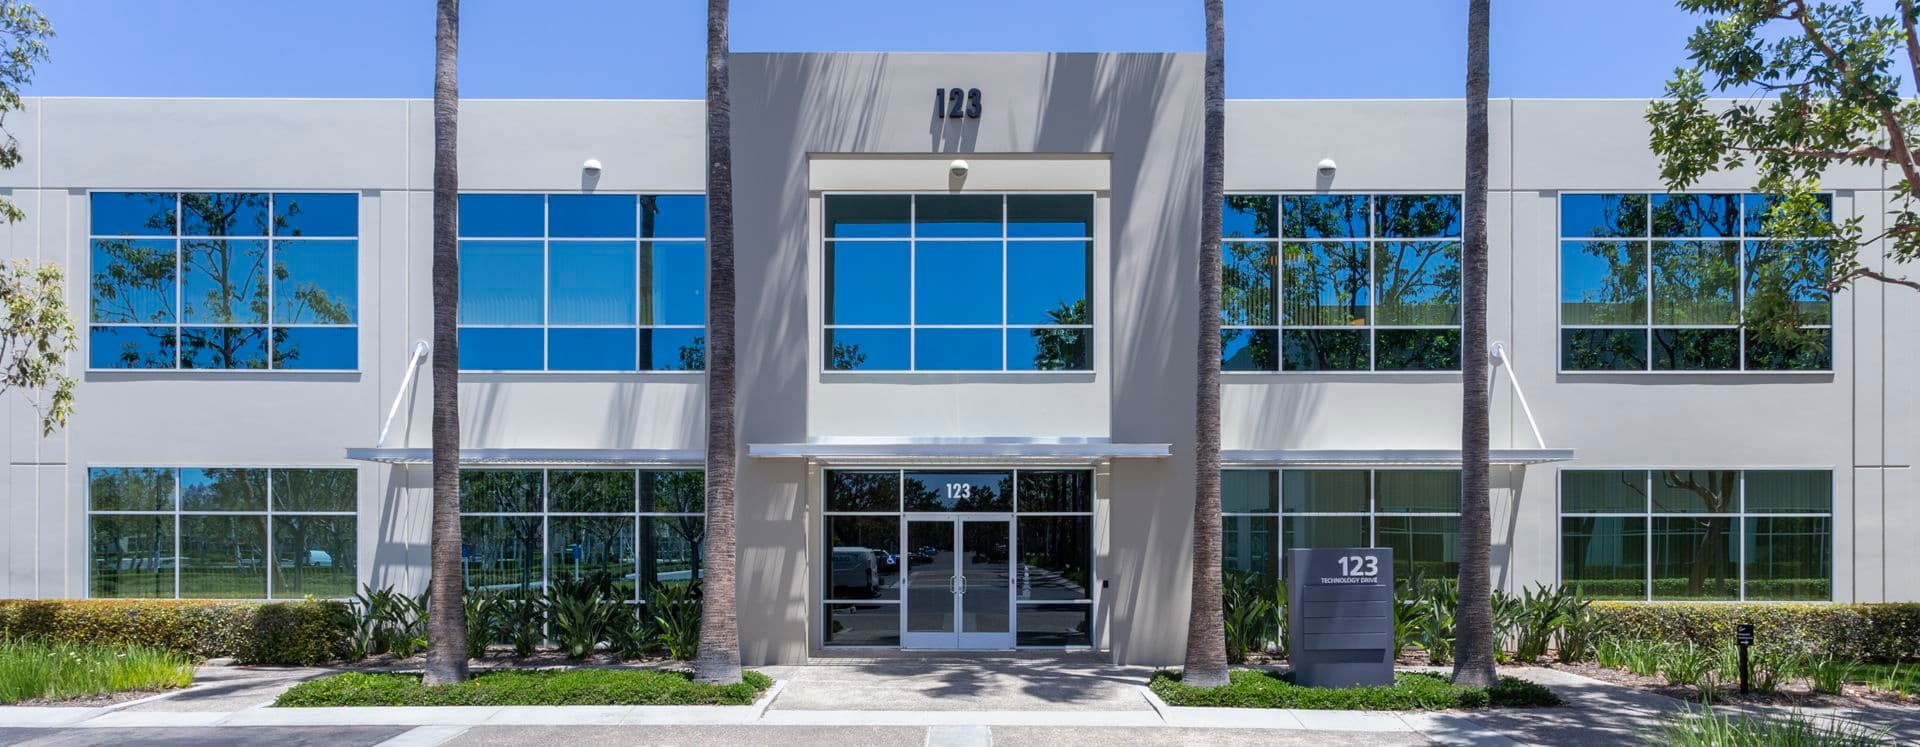 Exterior building photography of 123 Technology entry at Corporate Business Center in Irvine, CA